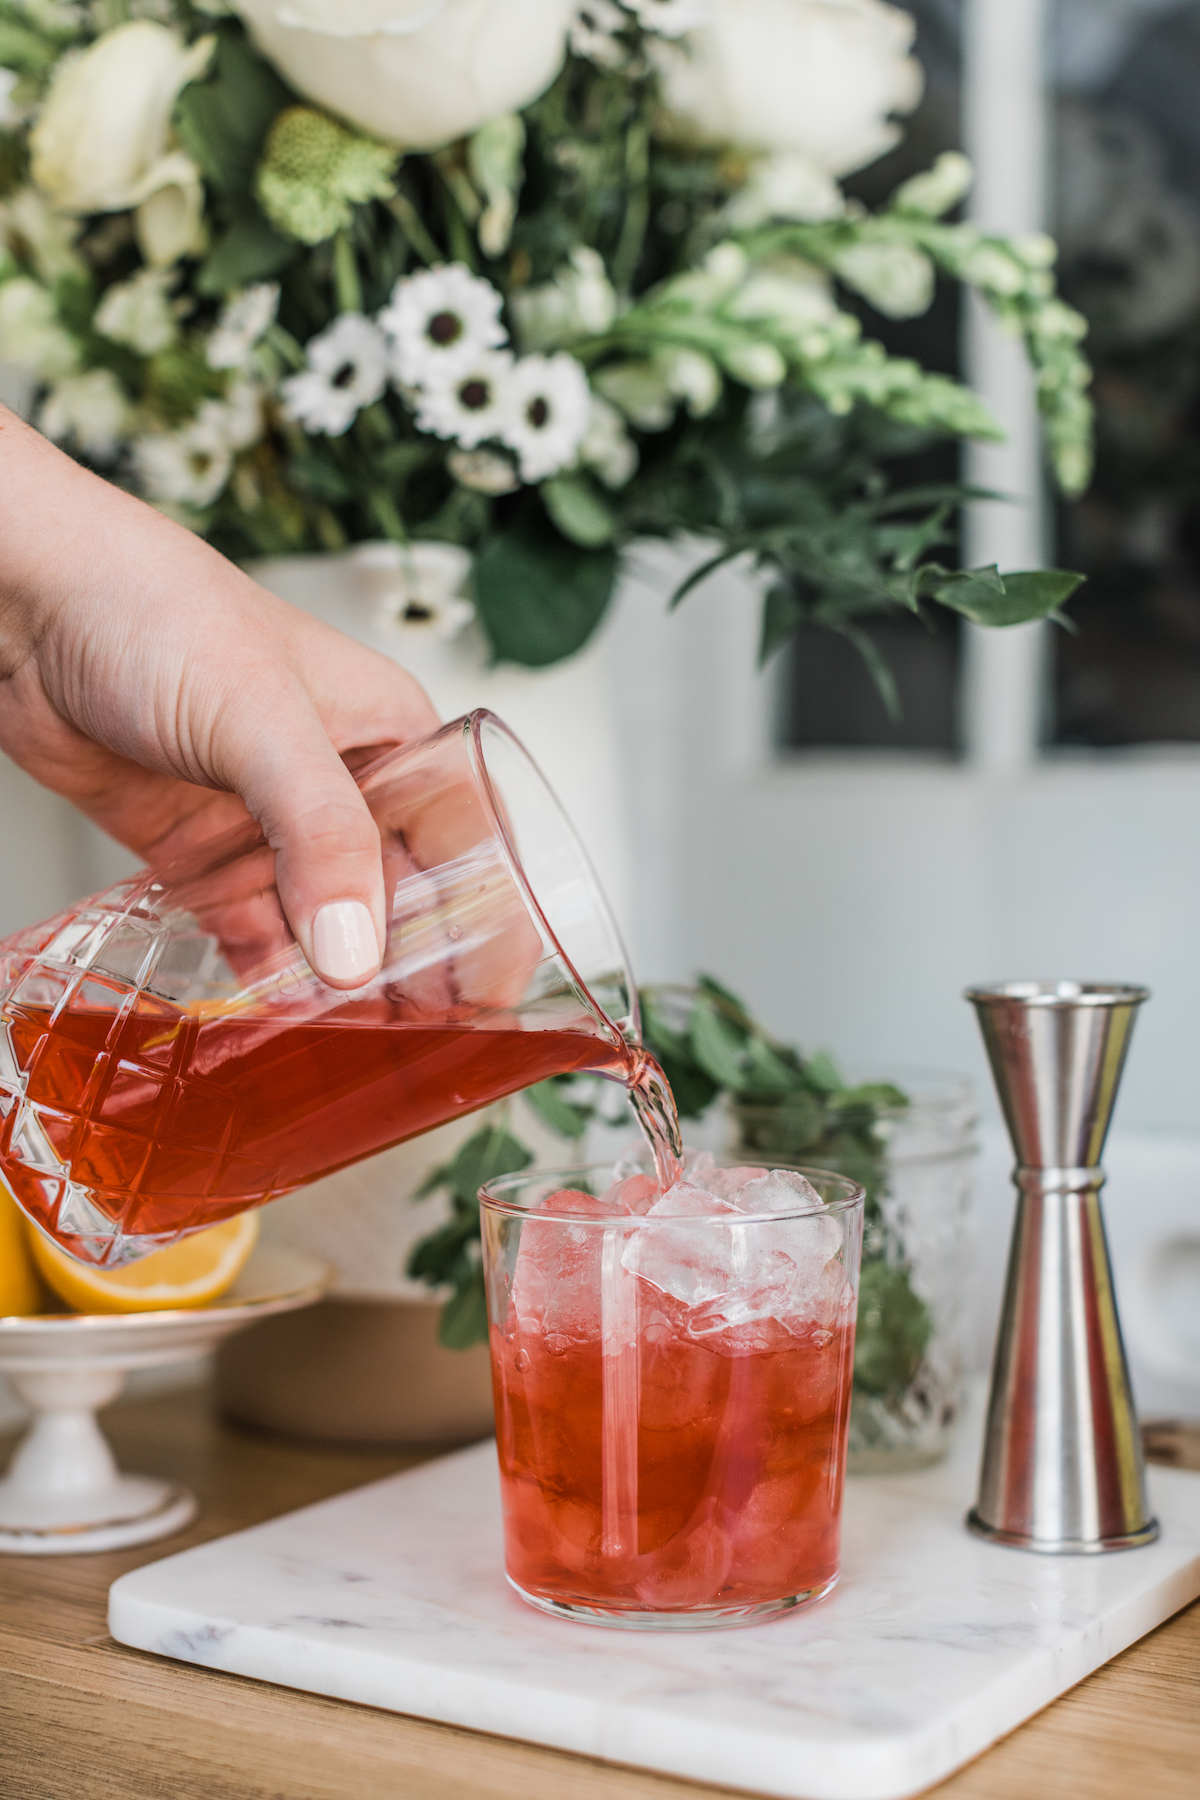 How to Make Kentucky Derby Oaks Lily Cocktail